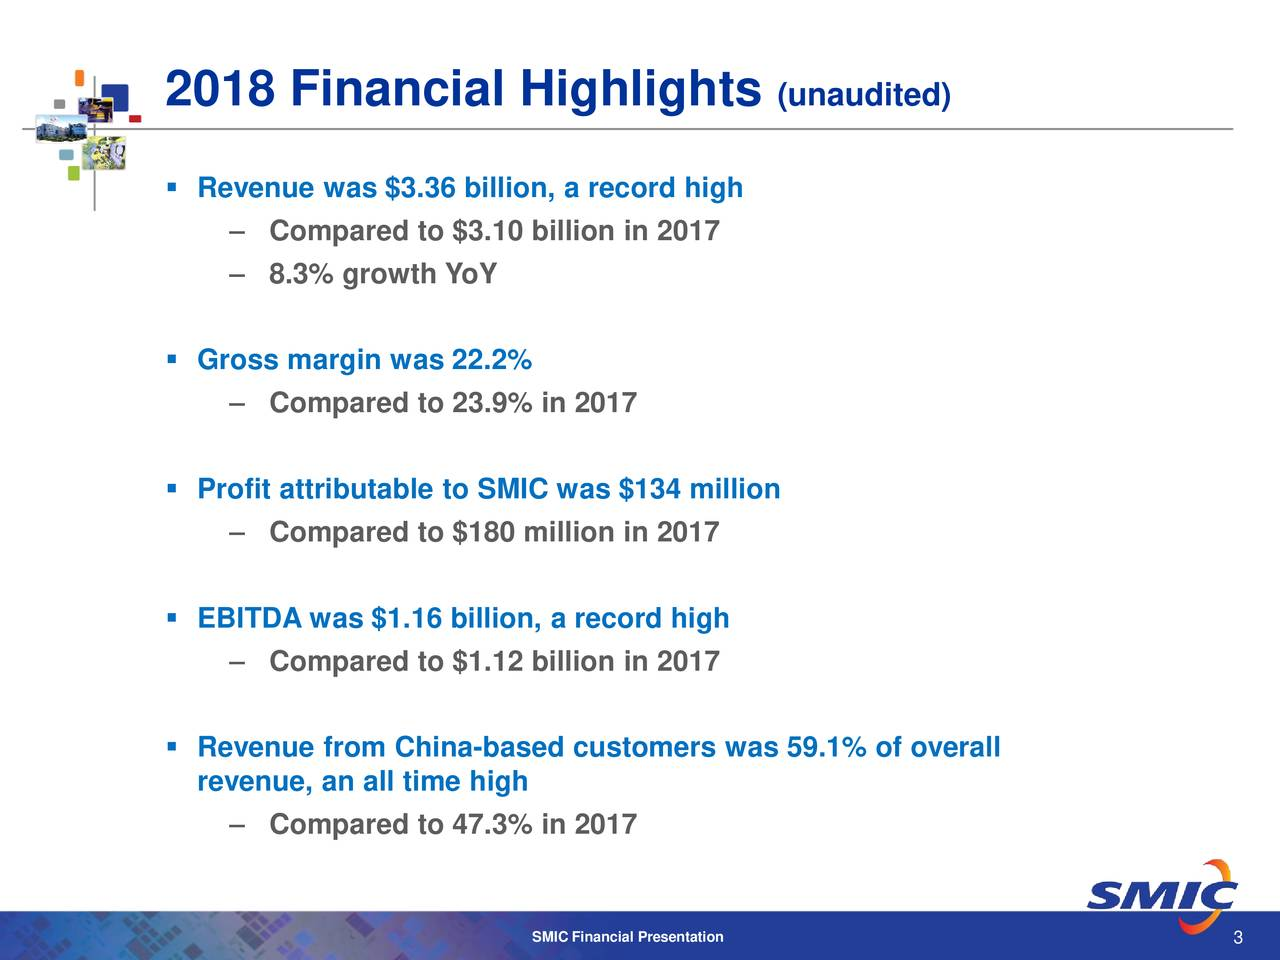  Revenue was $3.36 billion, a record high – Compared to $3.10 billion in 2017 – 8.3% growth YoY  Gross margin was 22.2% – Compared to 23.9% in 2017  Profit attributable to SMIC was $134 million – Compared to $180 million in 2017  EBITDA was $1.16 billion, a record high – Compared to $1.12 billion in 2017  Revenue from China-based customers was 59.1% of overall revenue, an all time high – Compared to 47.3% in 2017 SMIC Financial Presentation 3